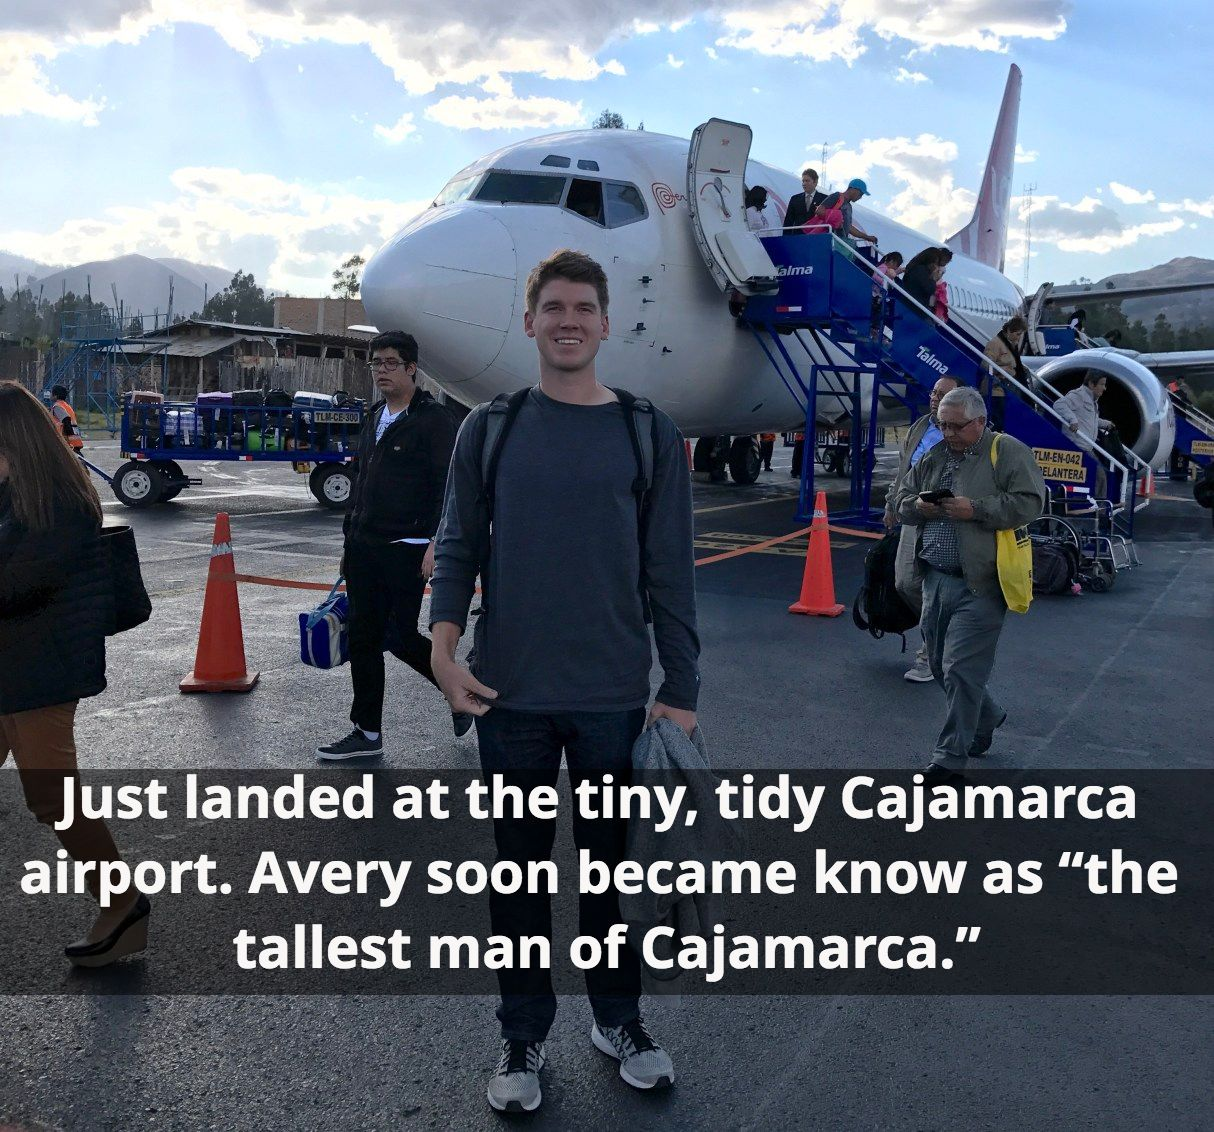 "Just landed at the tiny, tidy Cajamarca airport. Refreshing temps in the 40's and 50's. Avery soon became know as ""the tallest man of Cajamarca."""